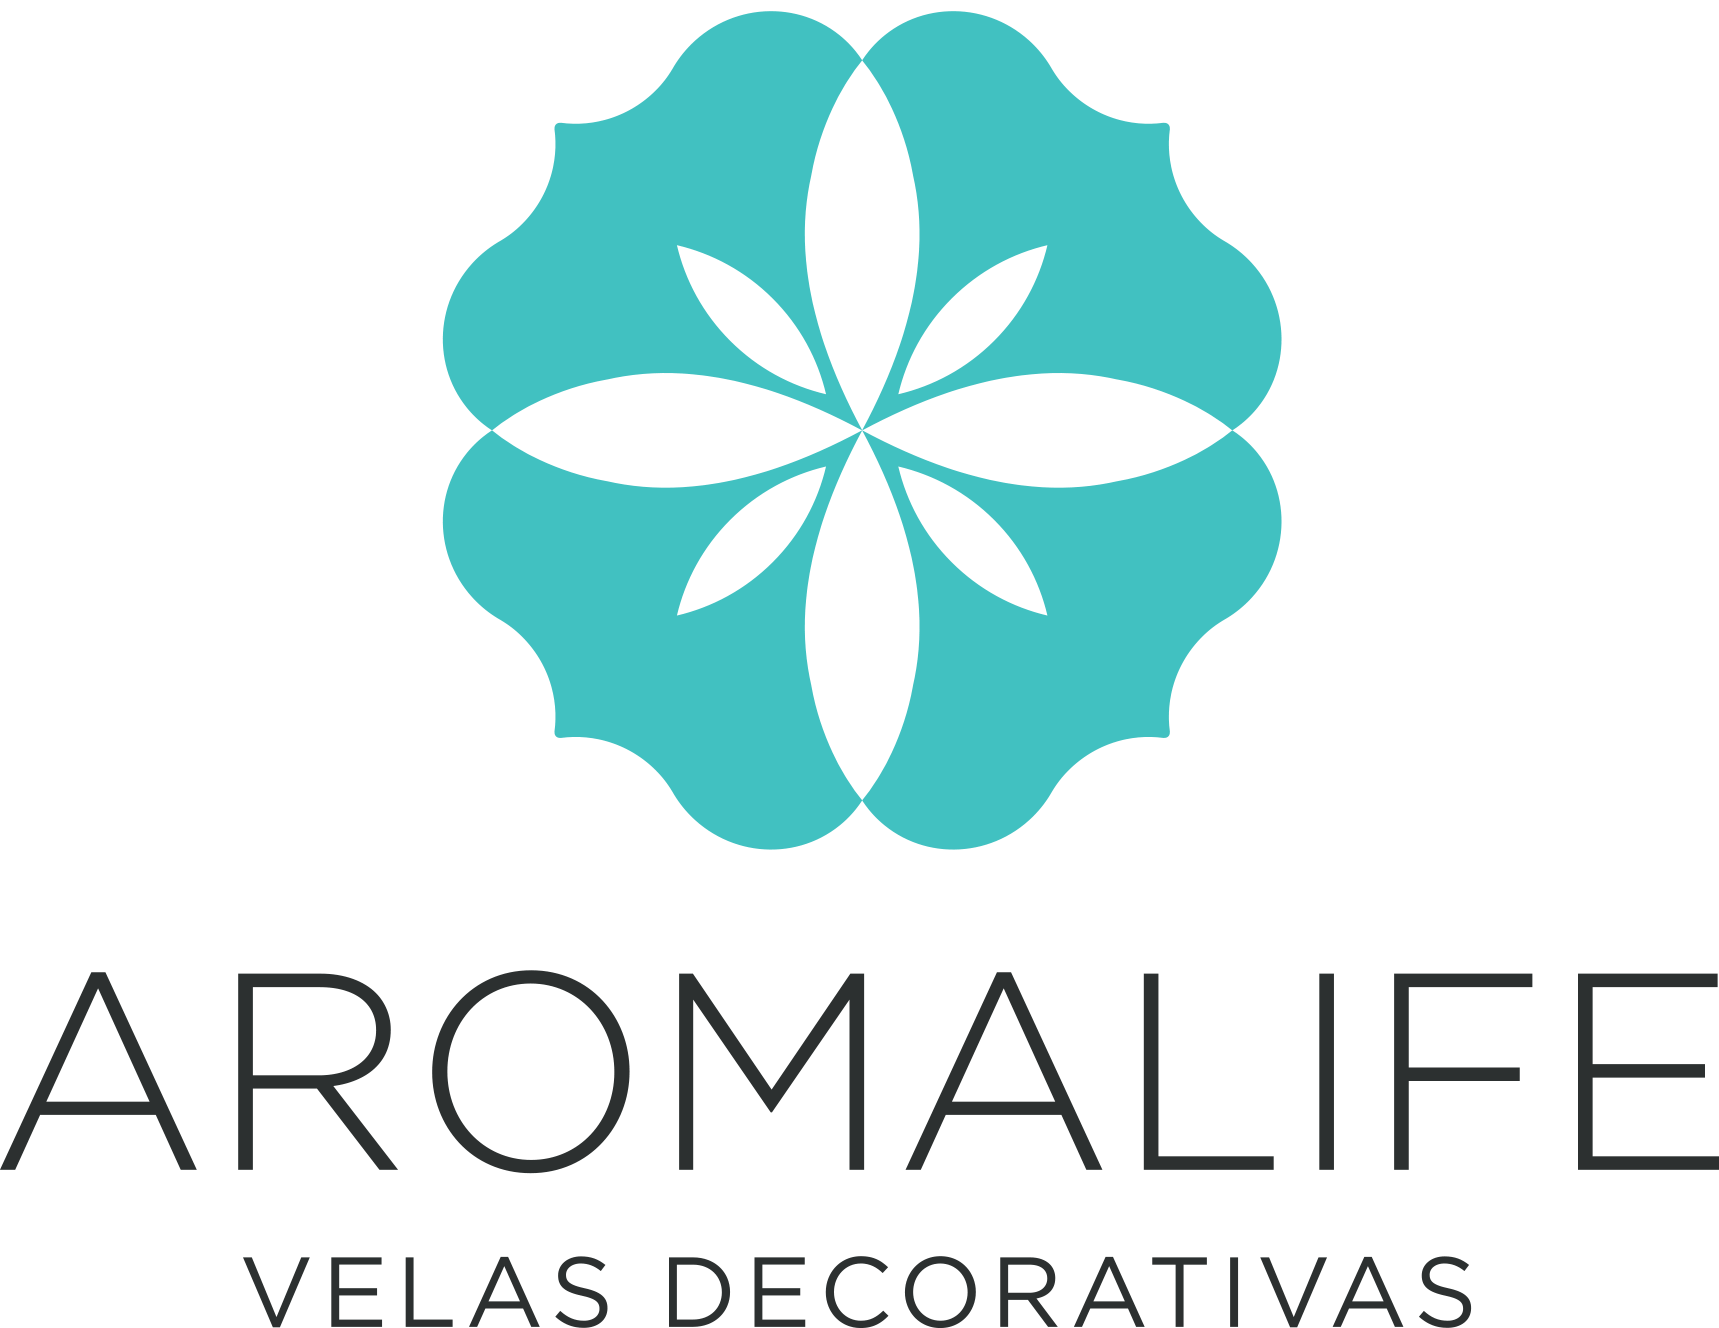 velas decorativas, recordatorios y regalos